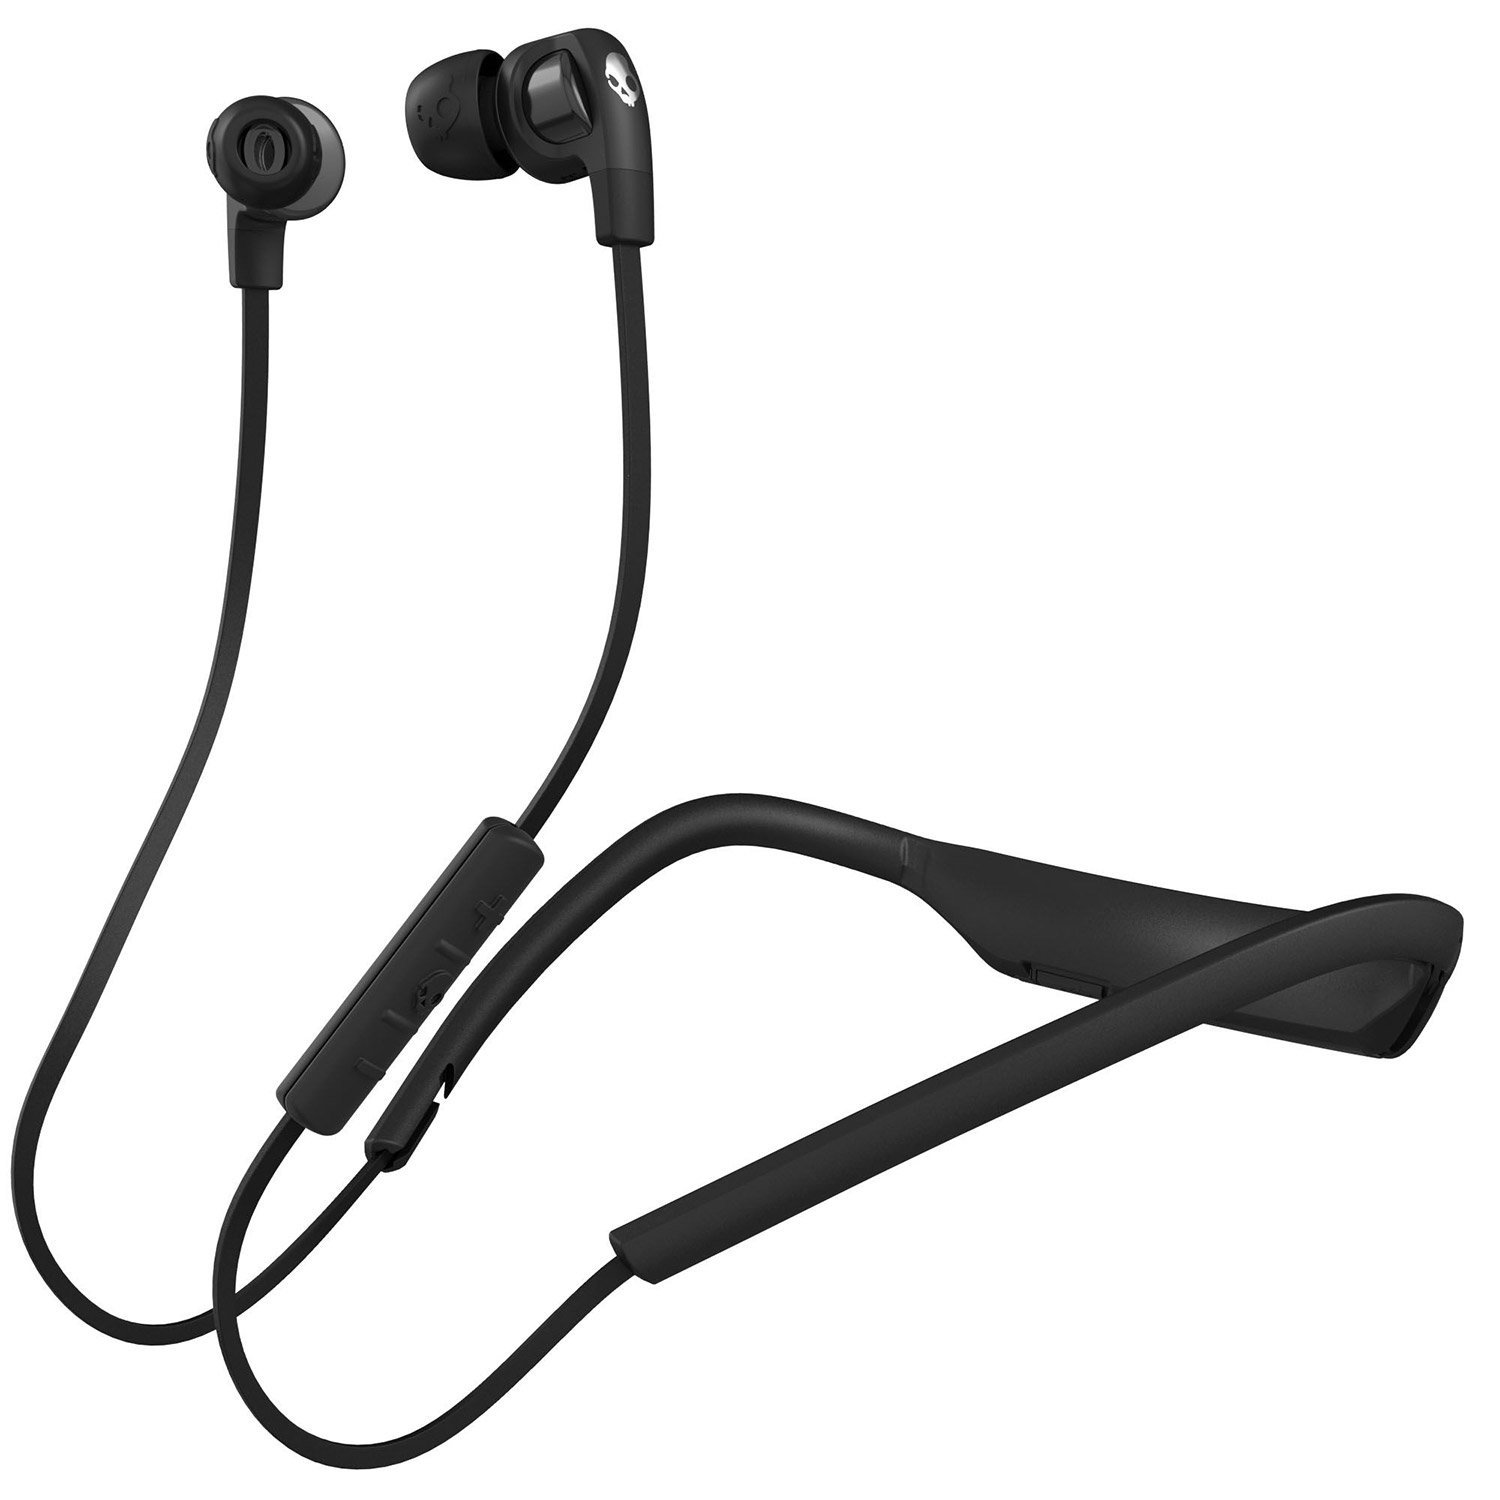 Skullcandy-Smokin-039-Buds-2-in-Ear-Bluetooth-Wireless-Earbuds-with-Microphone-New thumbnail 16